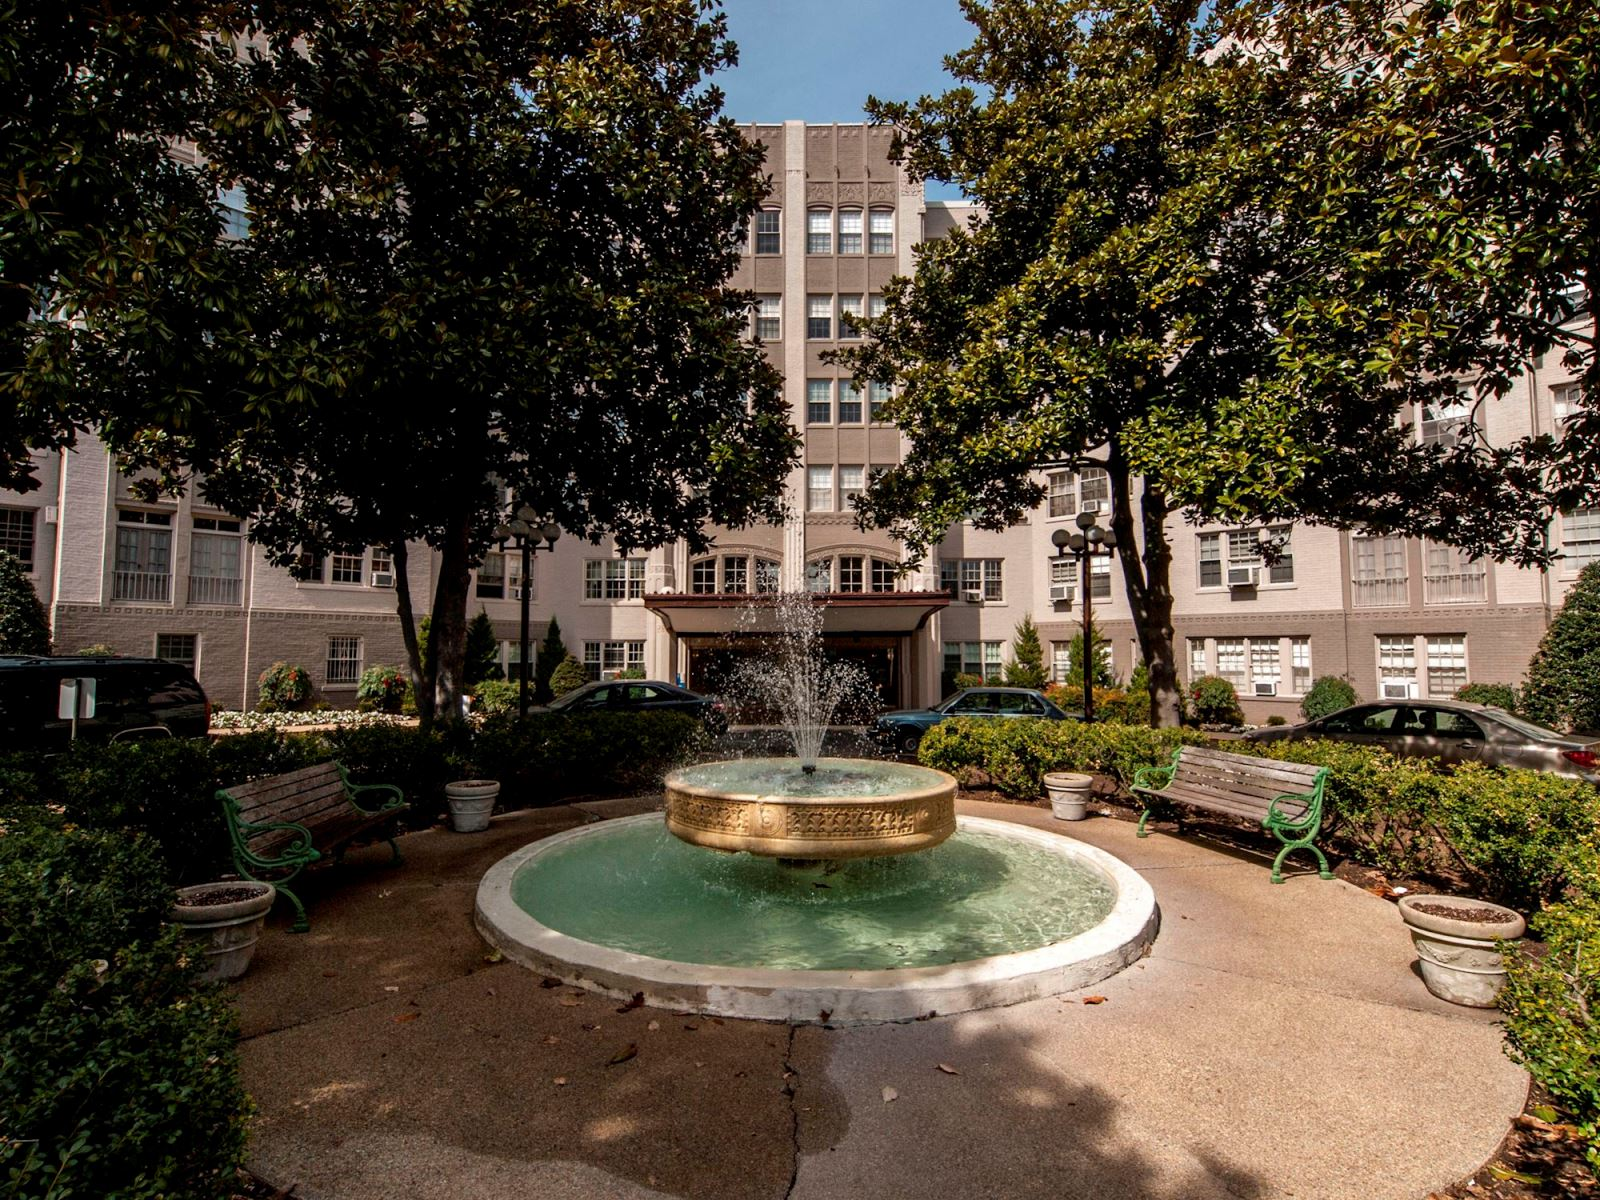 Condominium for Sale at 2737 Devonshire Place Nw 320, Washington Washington, District Of Columbia, 20008 United States